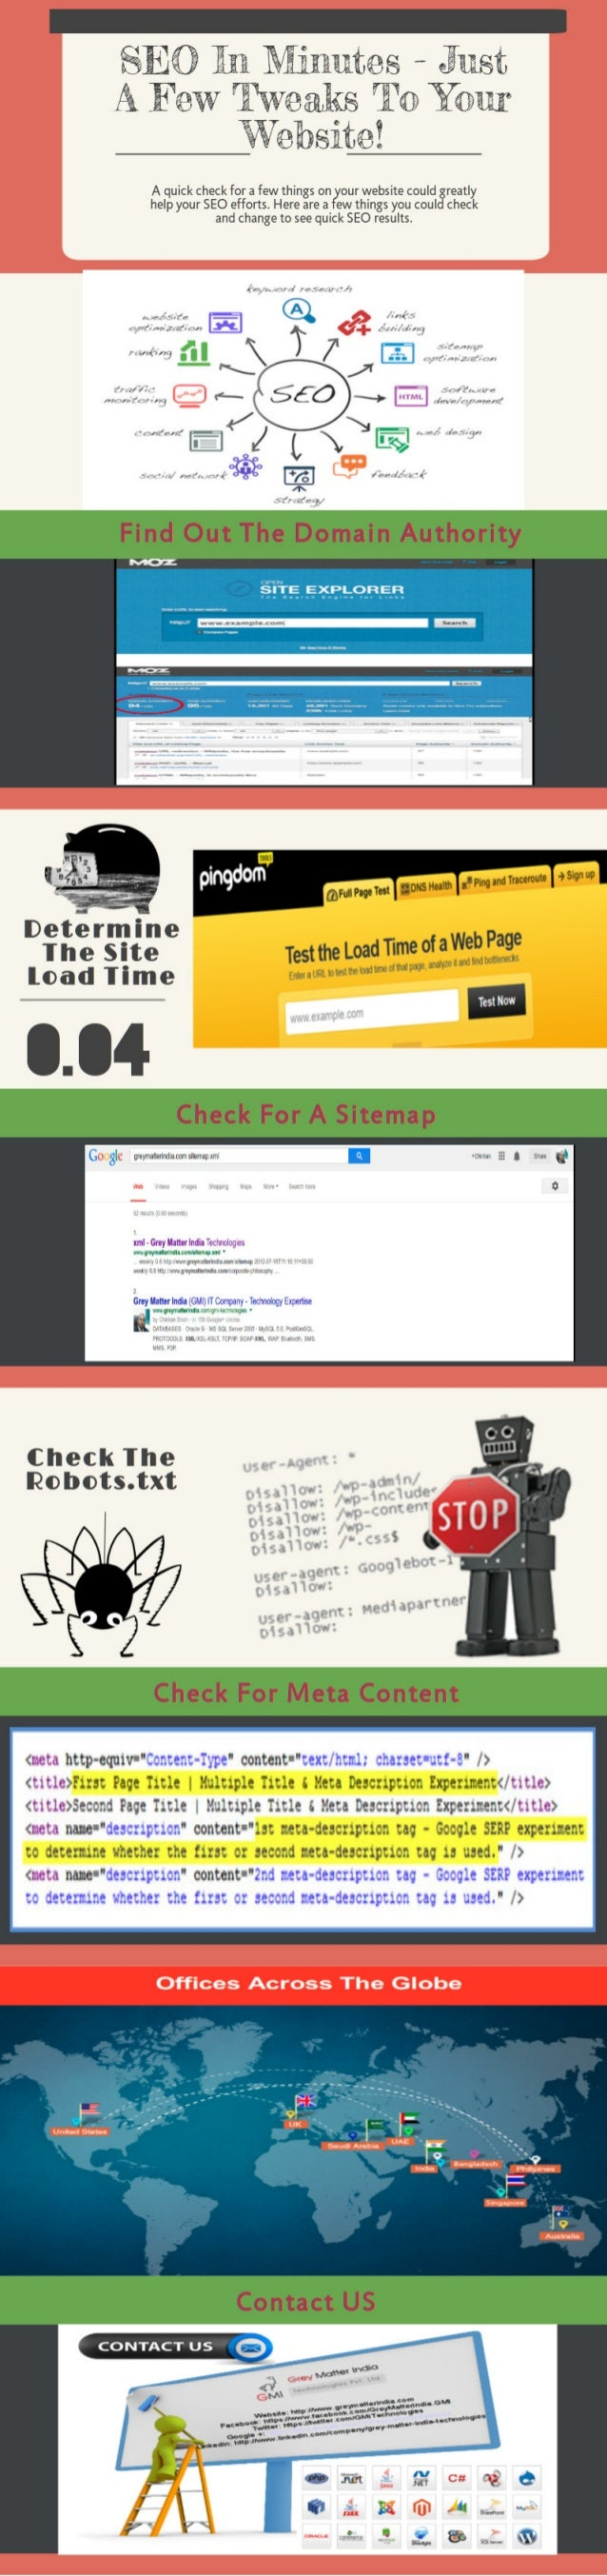 SEO in Minutes - Just A Few Tweaks To Your Website!